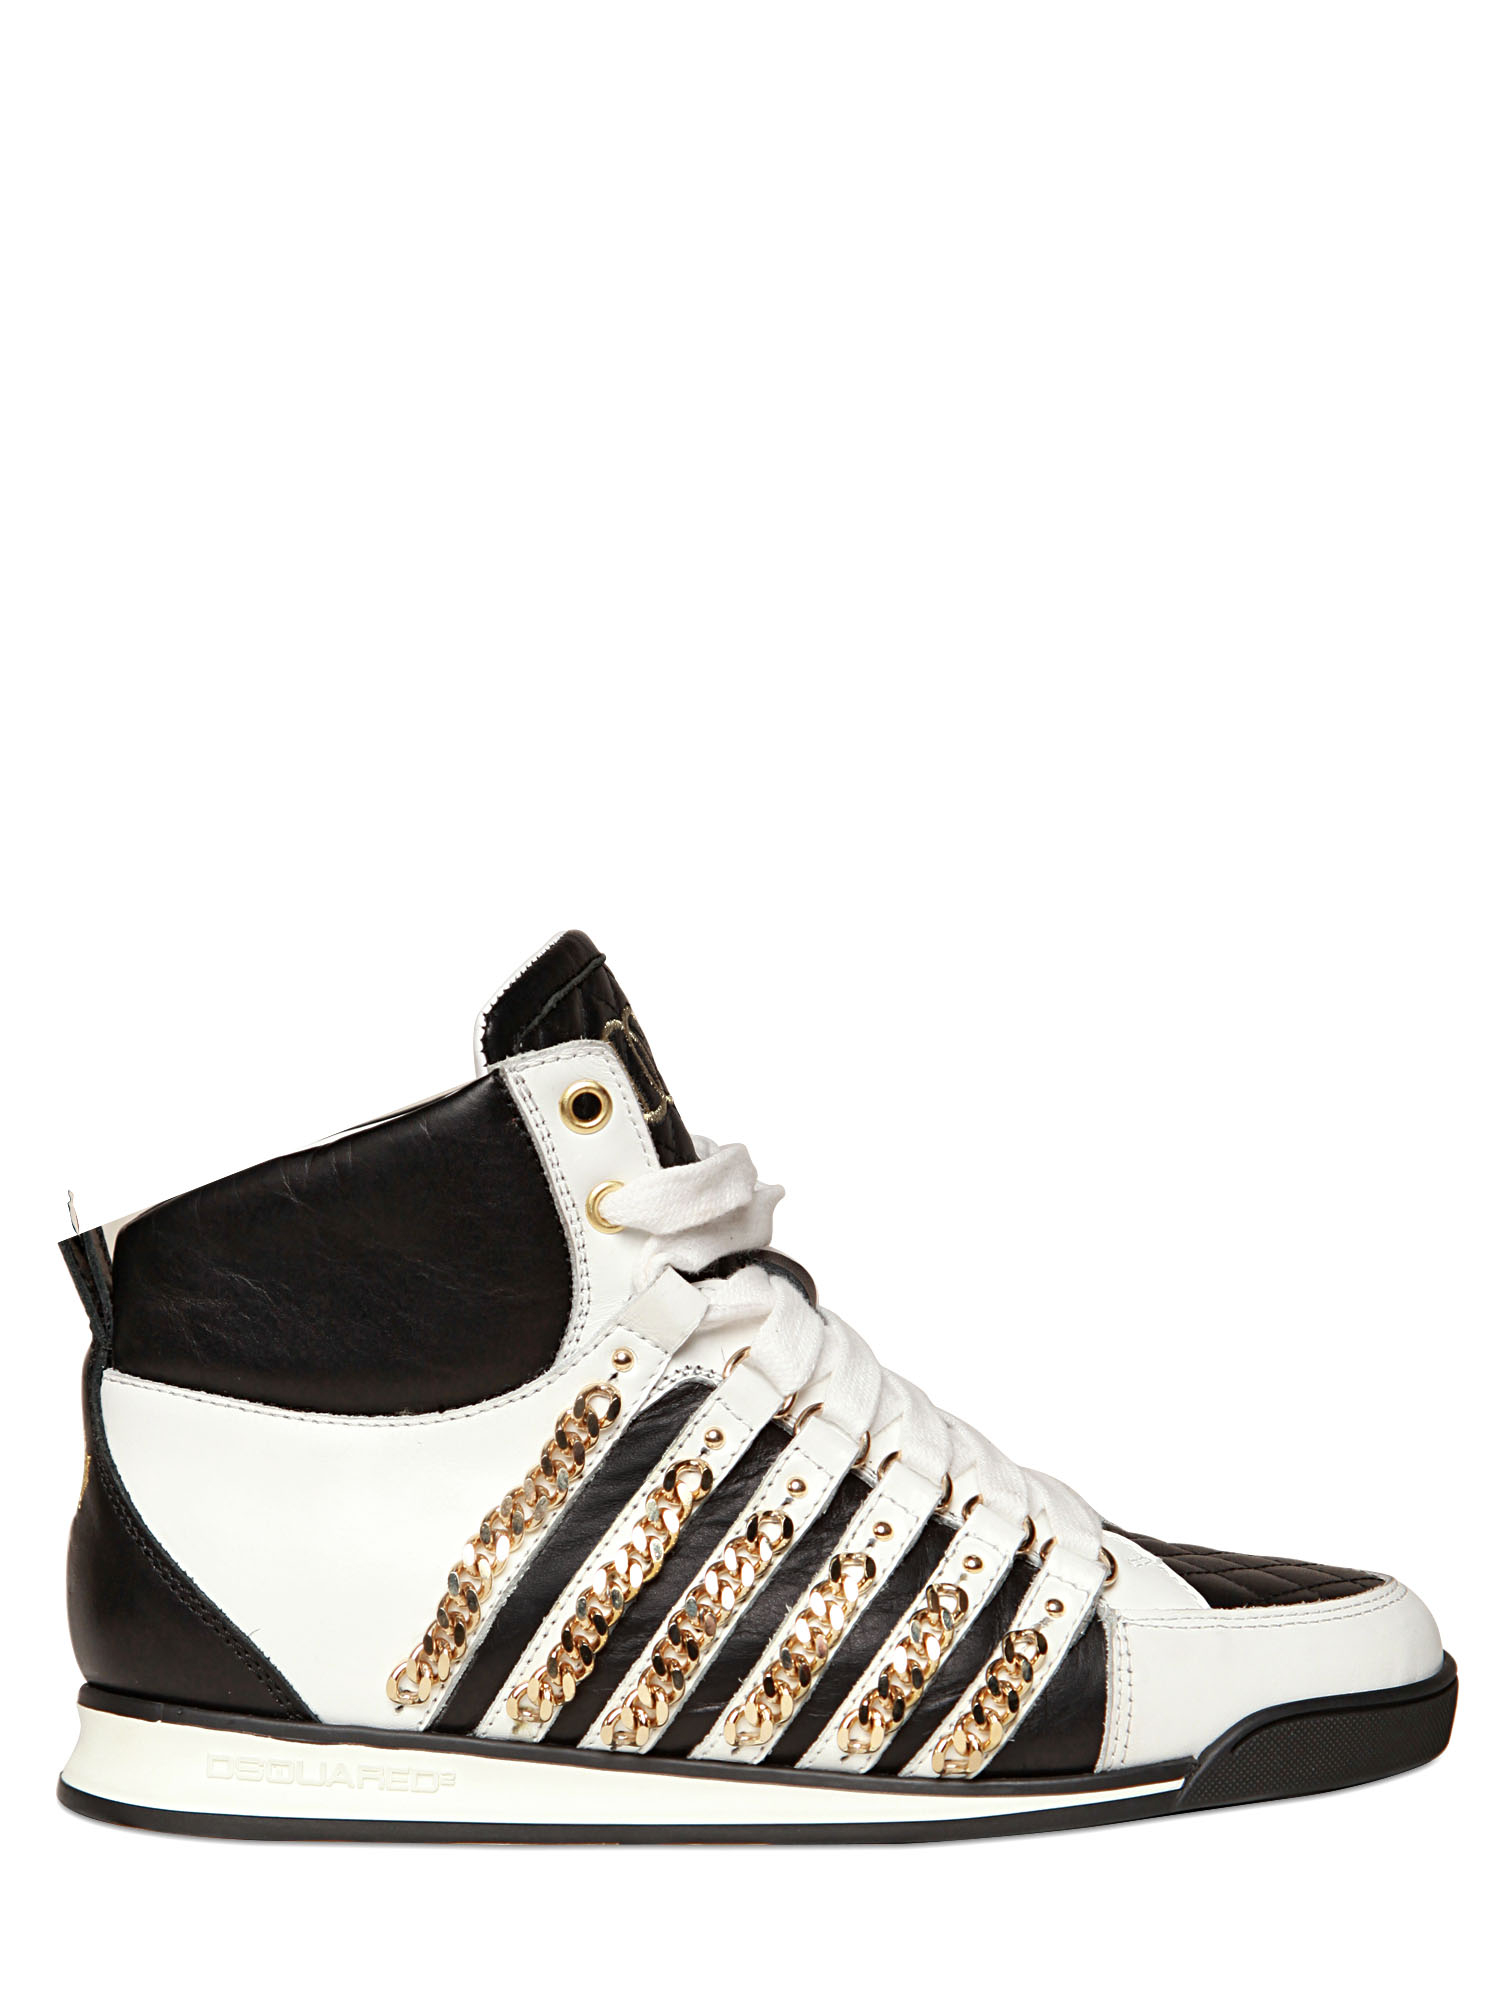 33015d6d381 Lyst - DSquared² 50mm Leather Chain High Top Sneakers in White